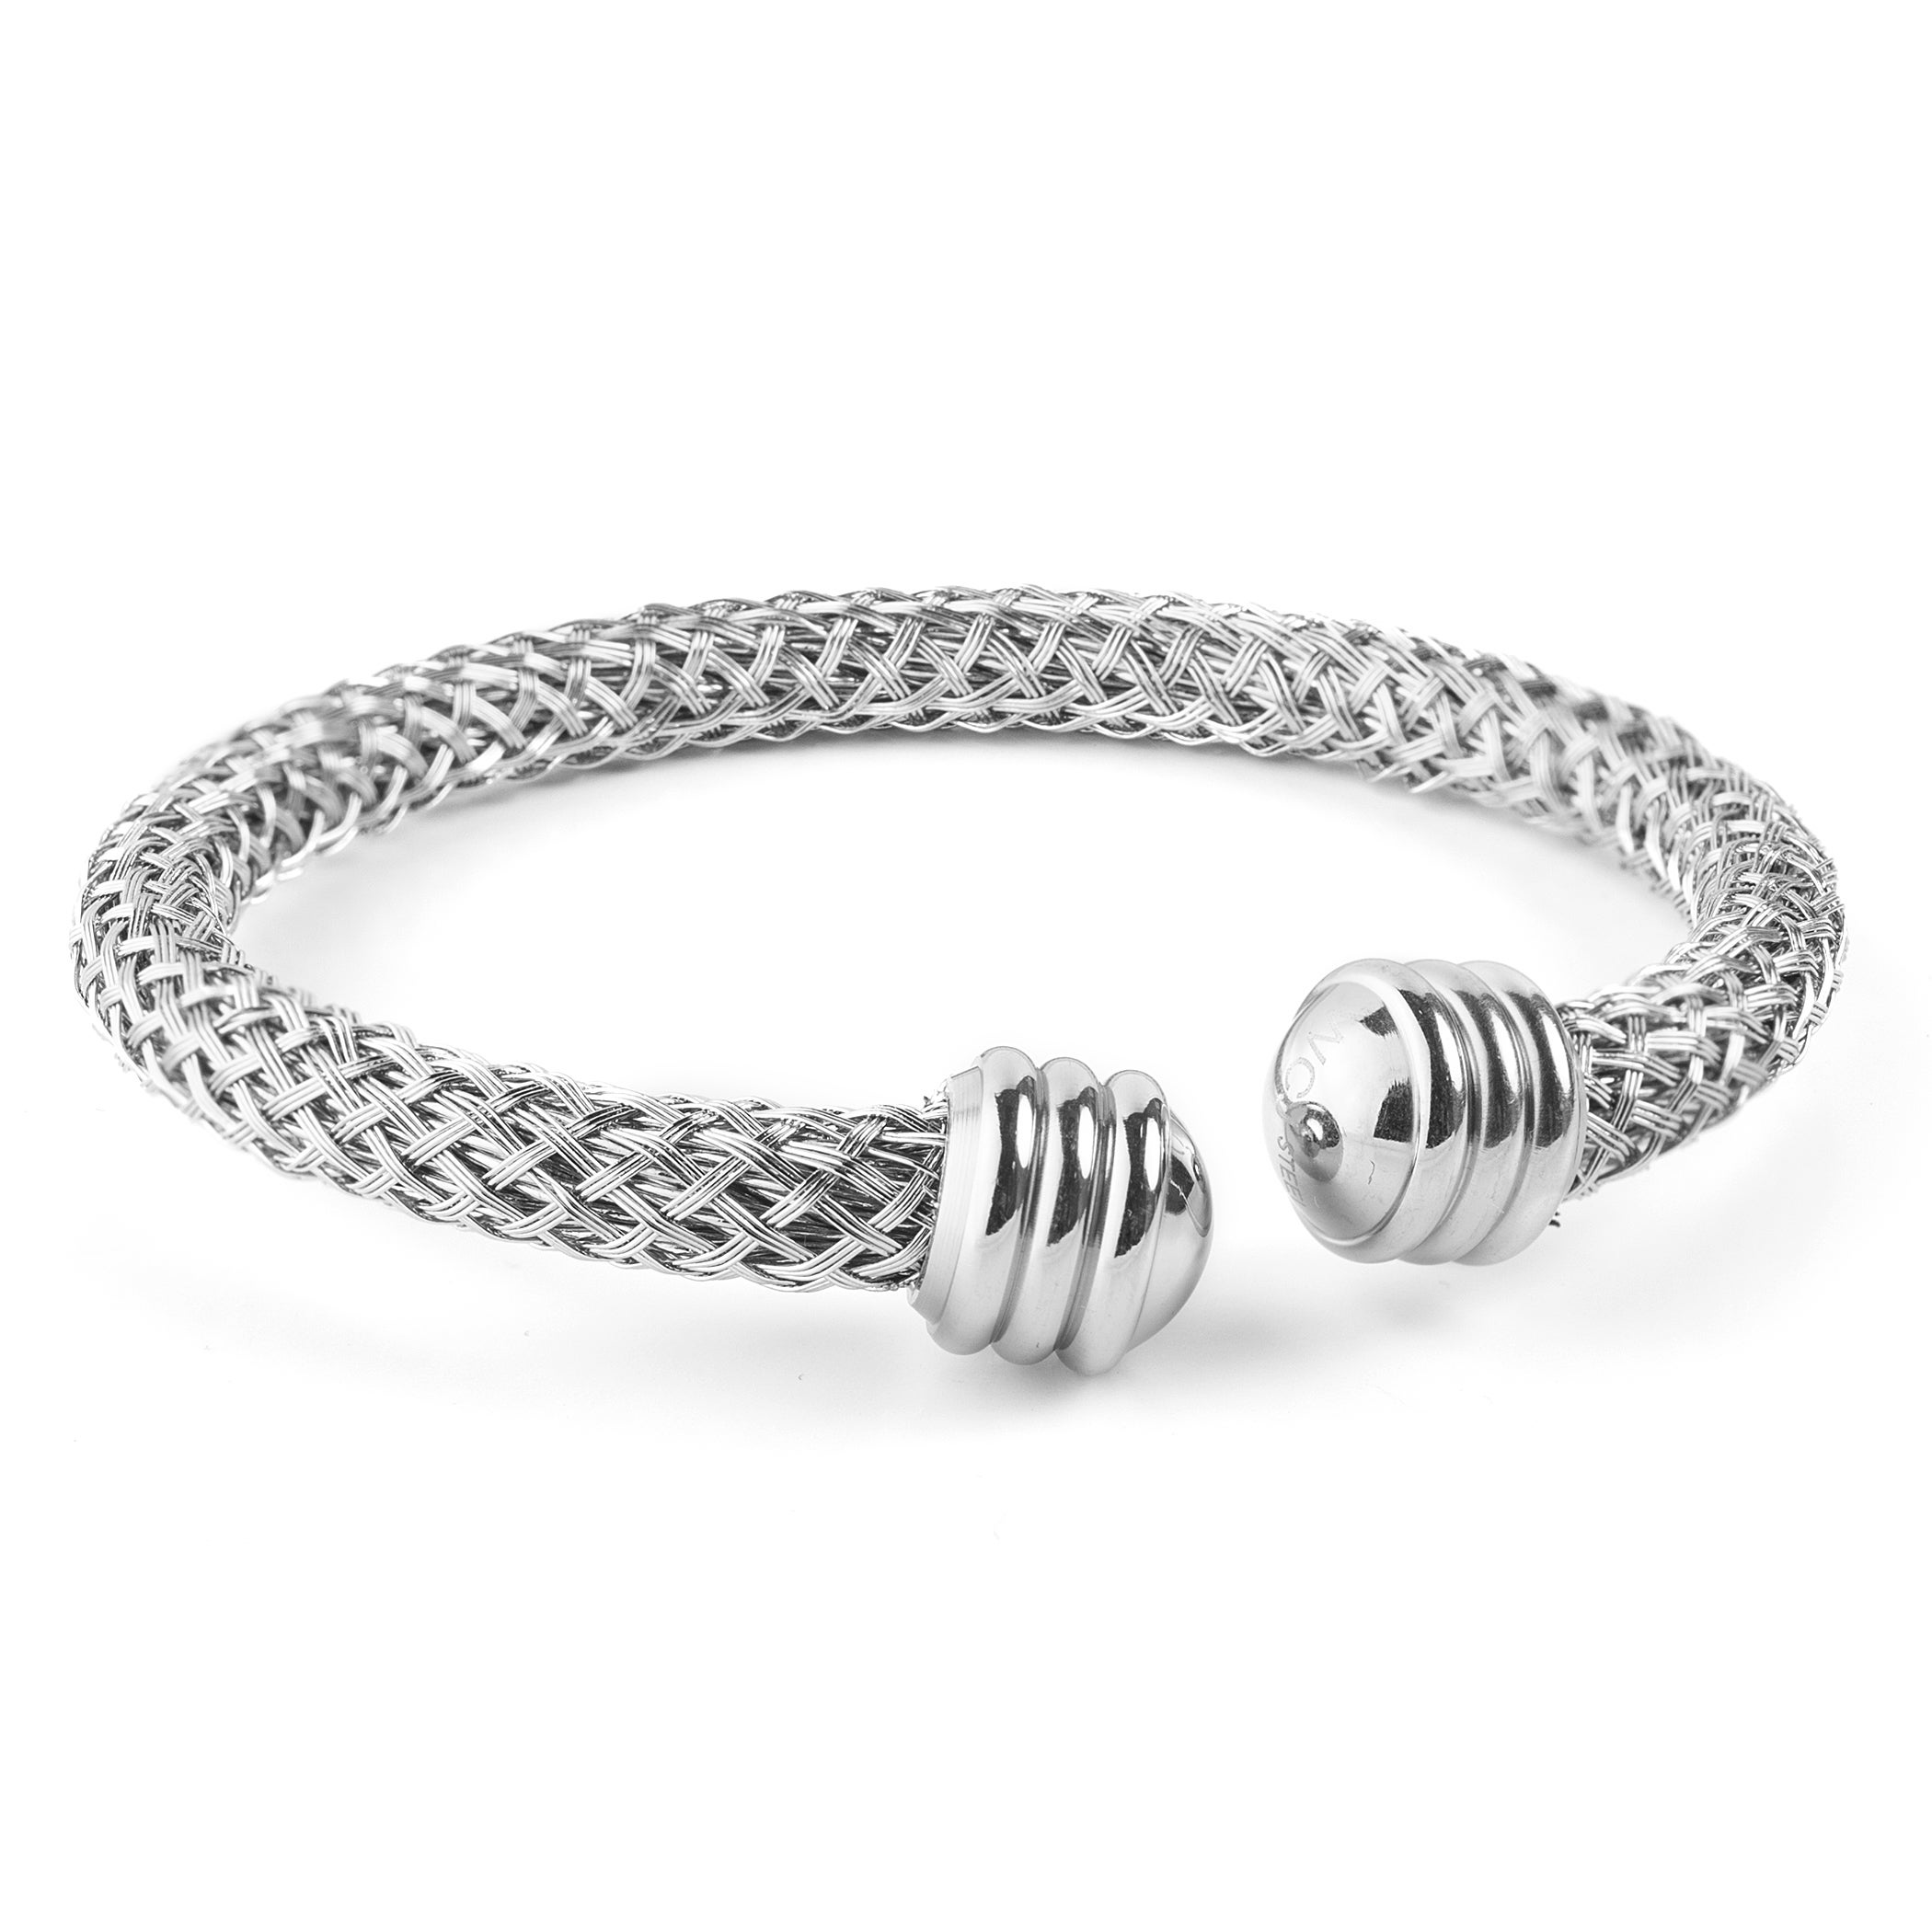 West Coast Stainless Steel Intricate Cable Knobbed End Cu...